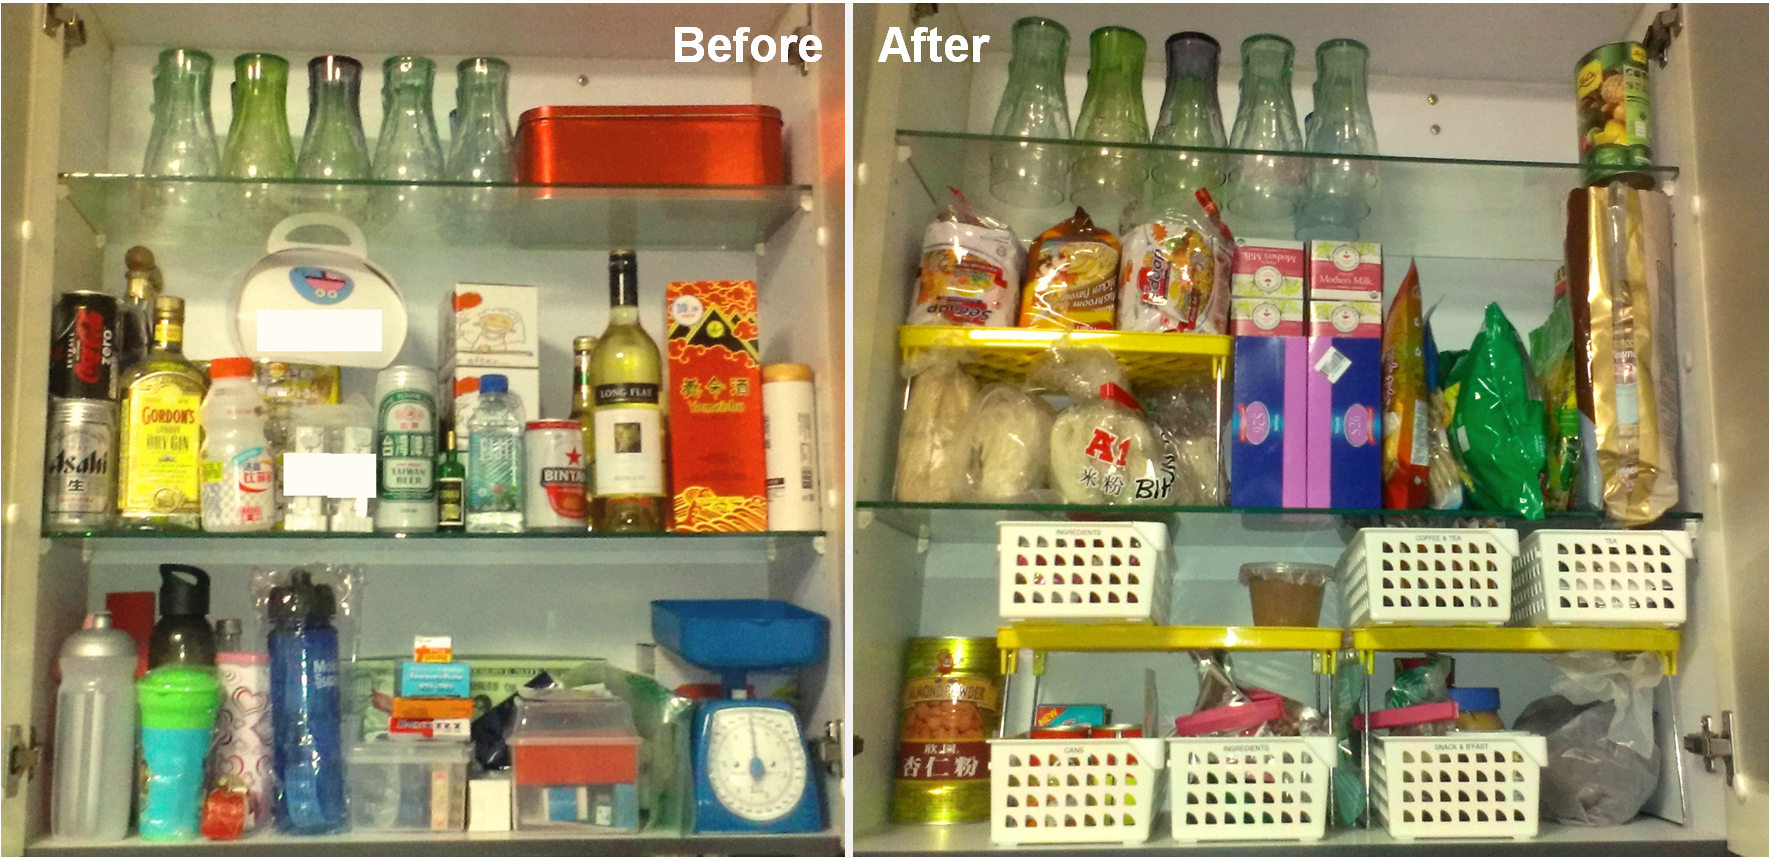 Use pantry baskets to organize the stray cans, jars, packets of food, sachets, etc.  Label the baskets and you will always know where everything you need is.